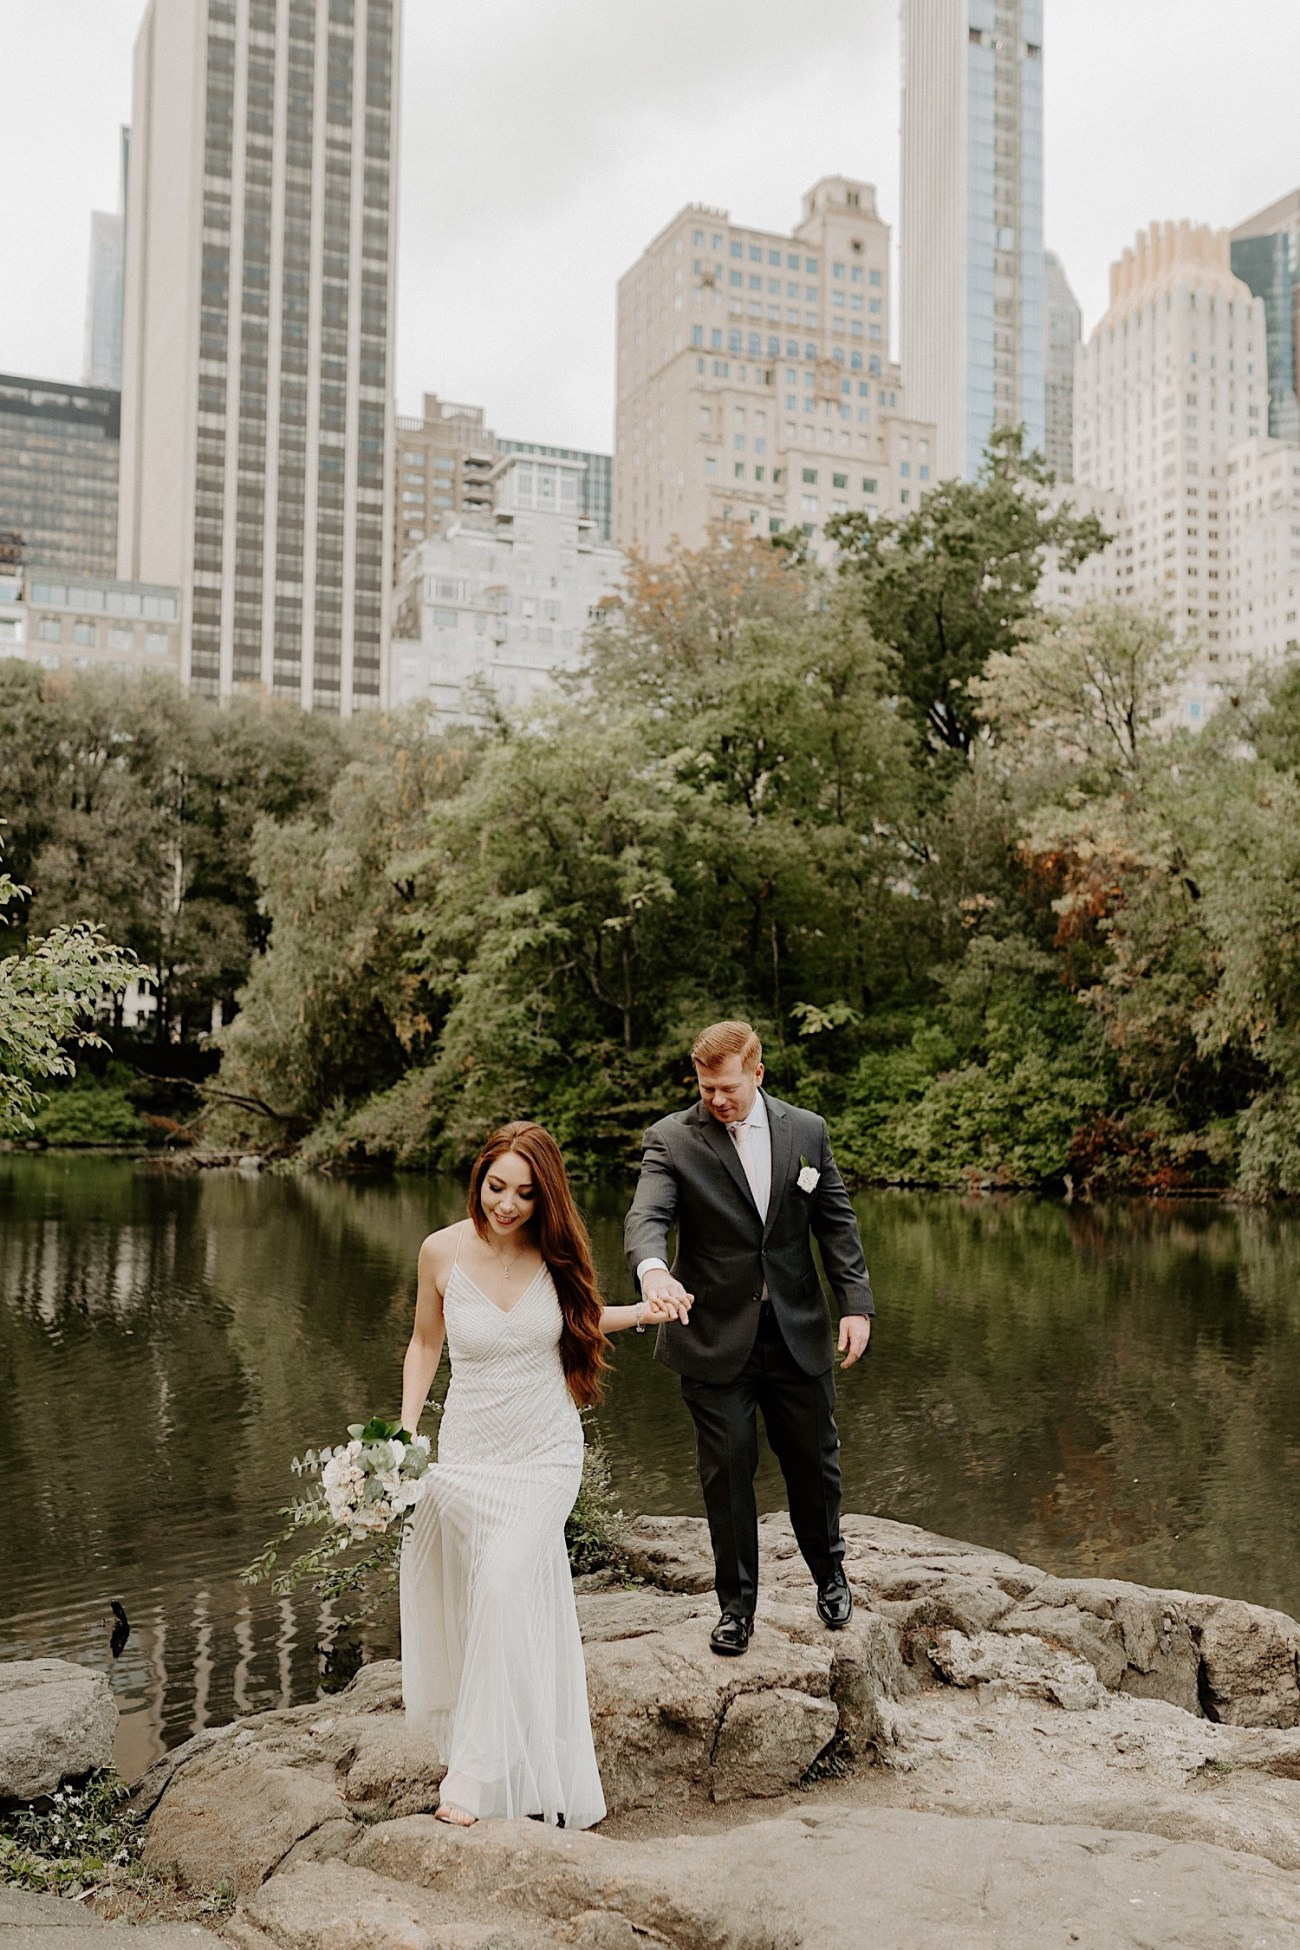 Central Park Wedding Photos Central Park Elopement NYC Wedding Photographer 08